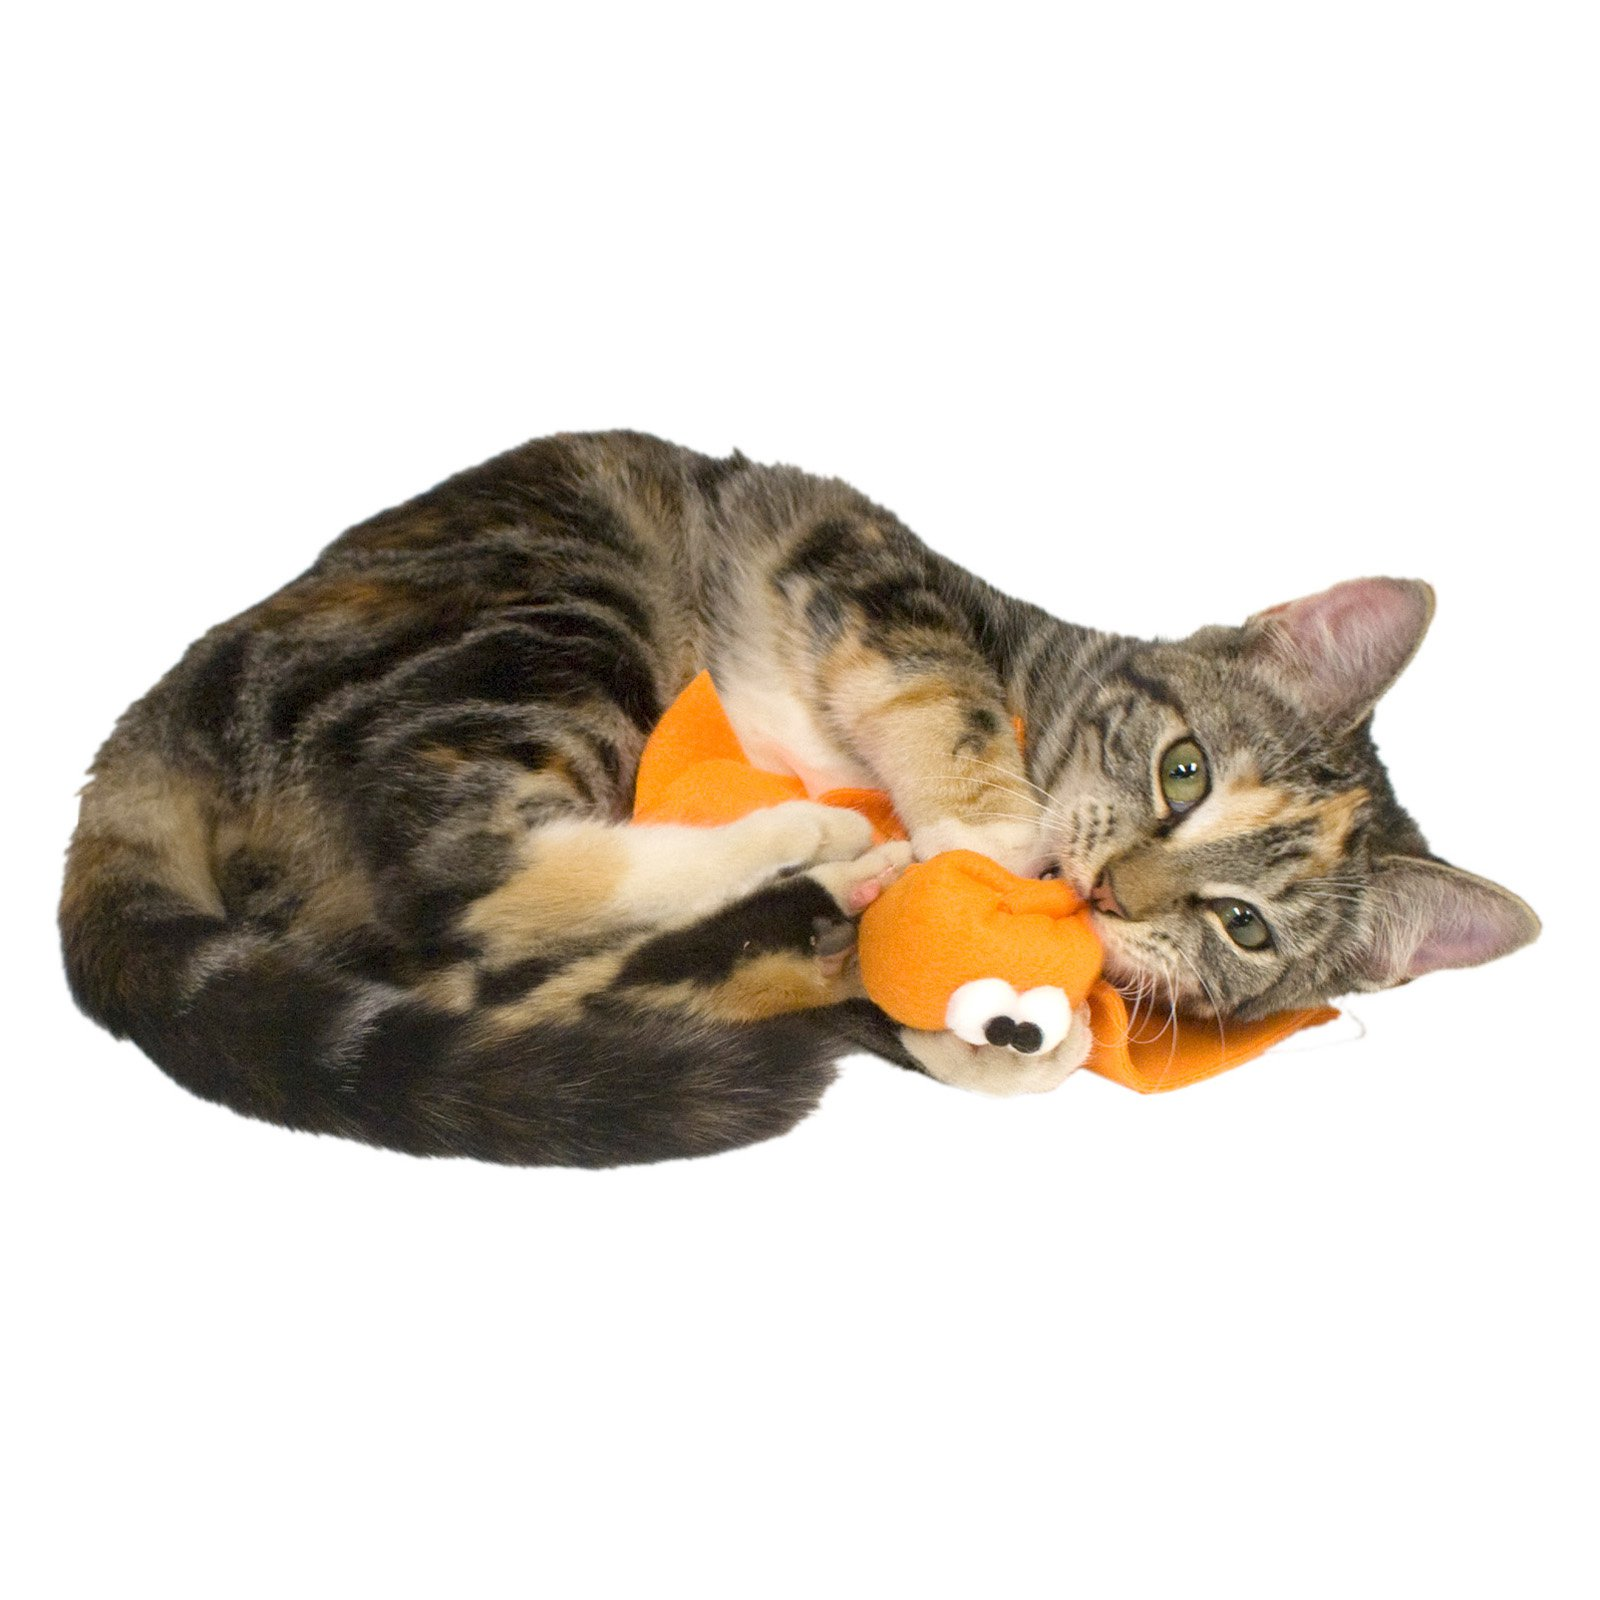 Goldie Goldfish Catnip Toy by Imperial Cat